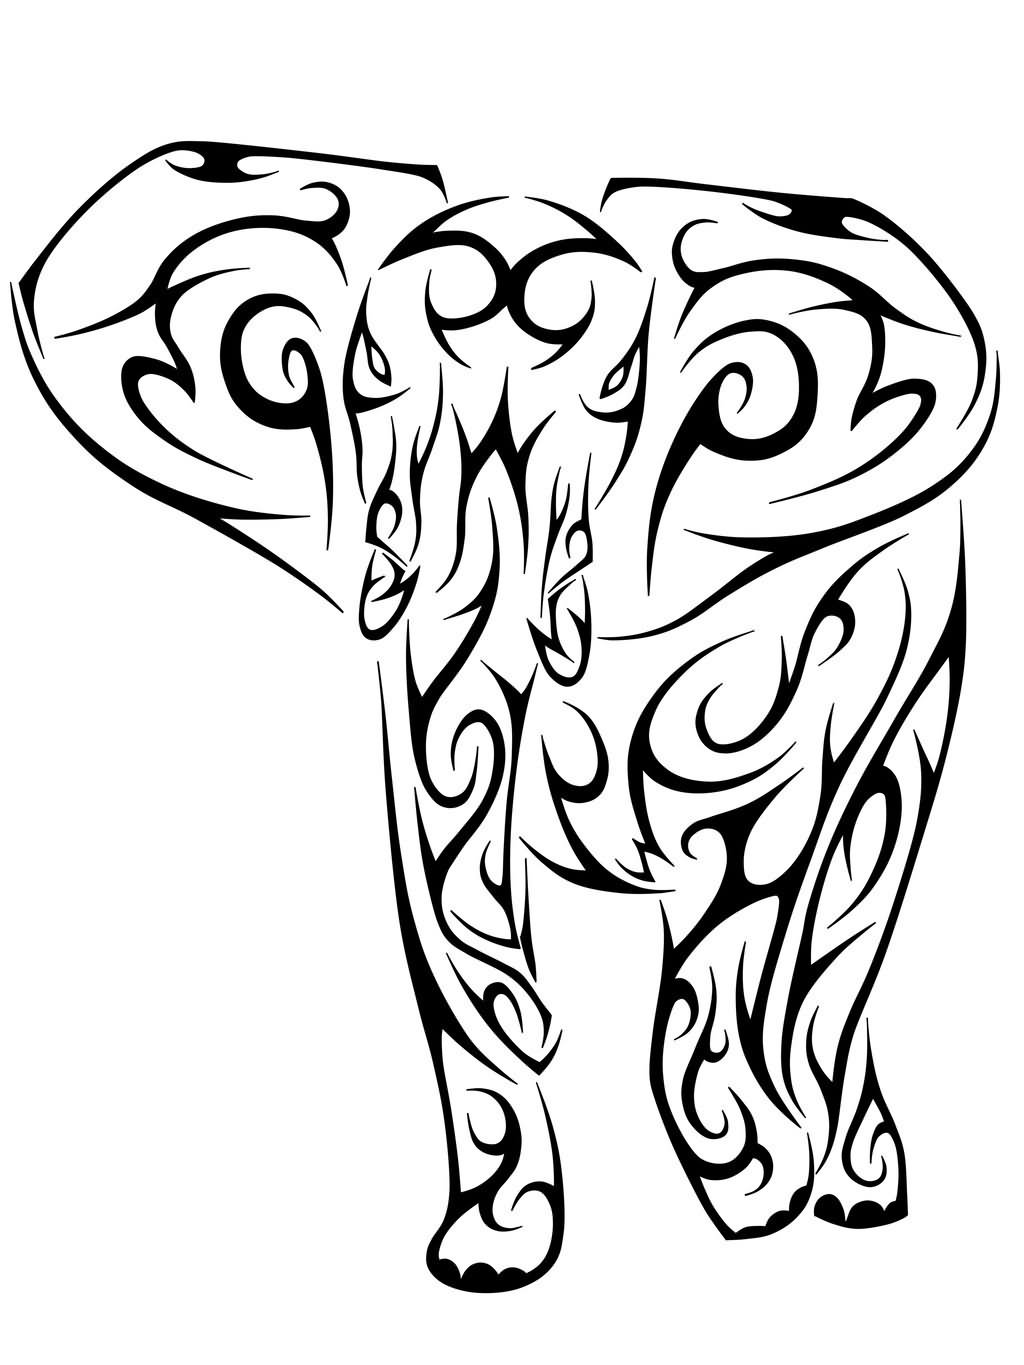 Henna Elephant Drawing at GetDrawings.com | Free for personal use ...